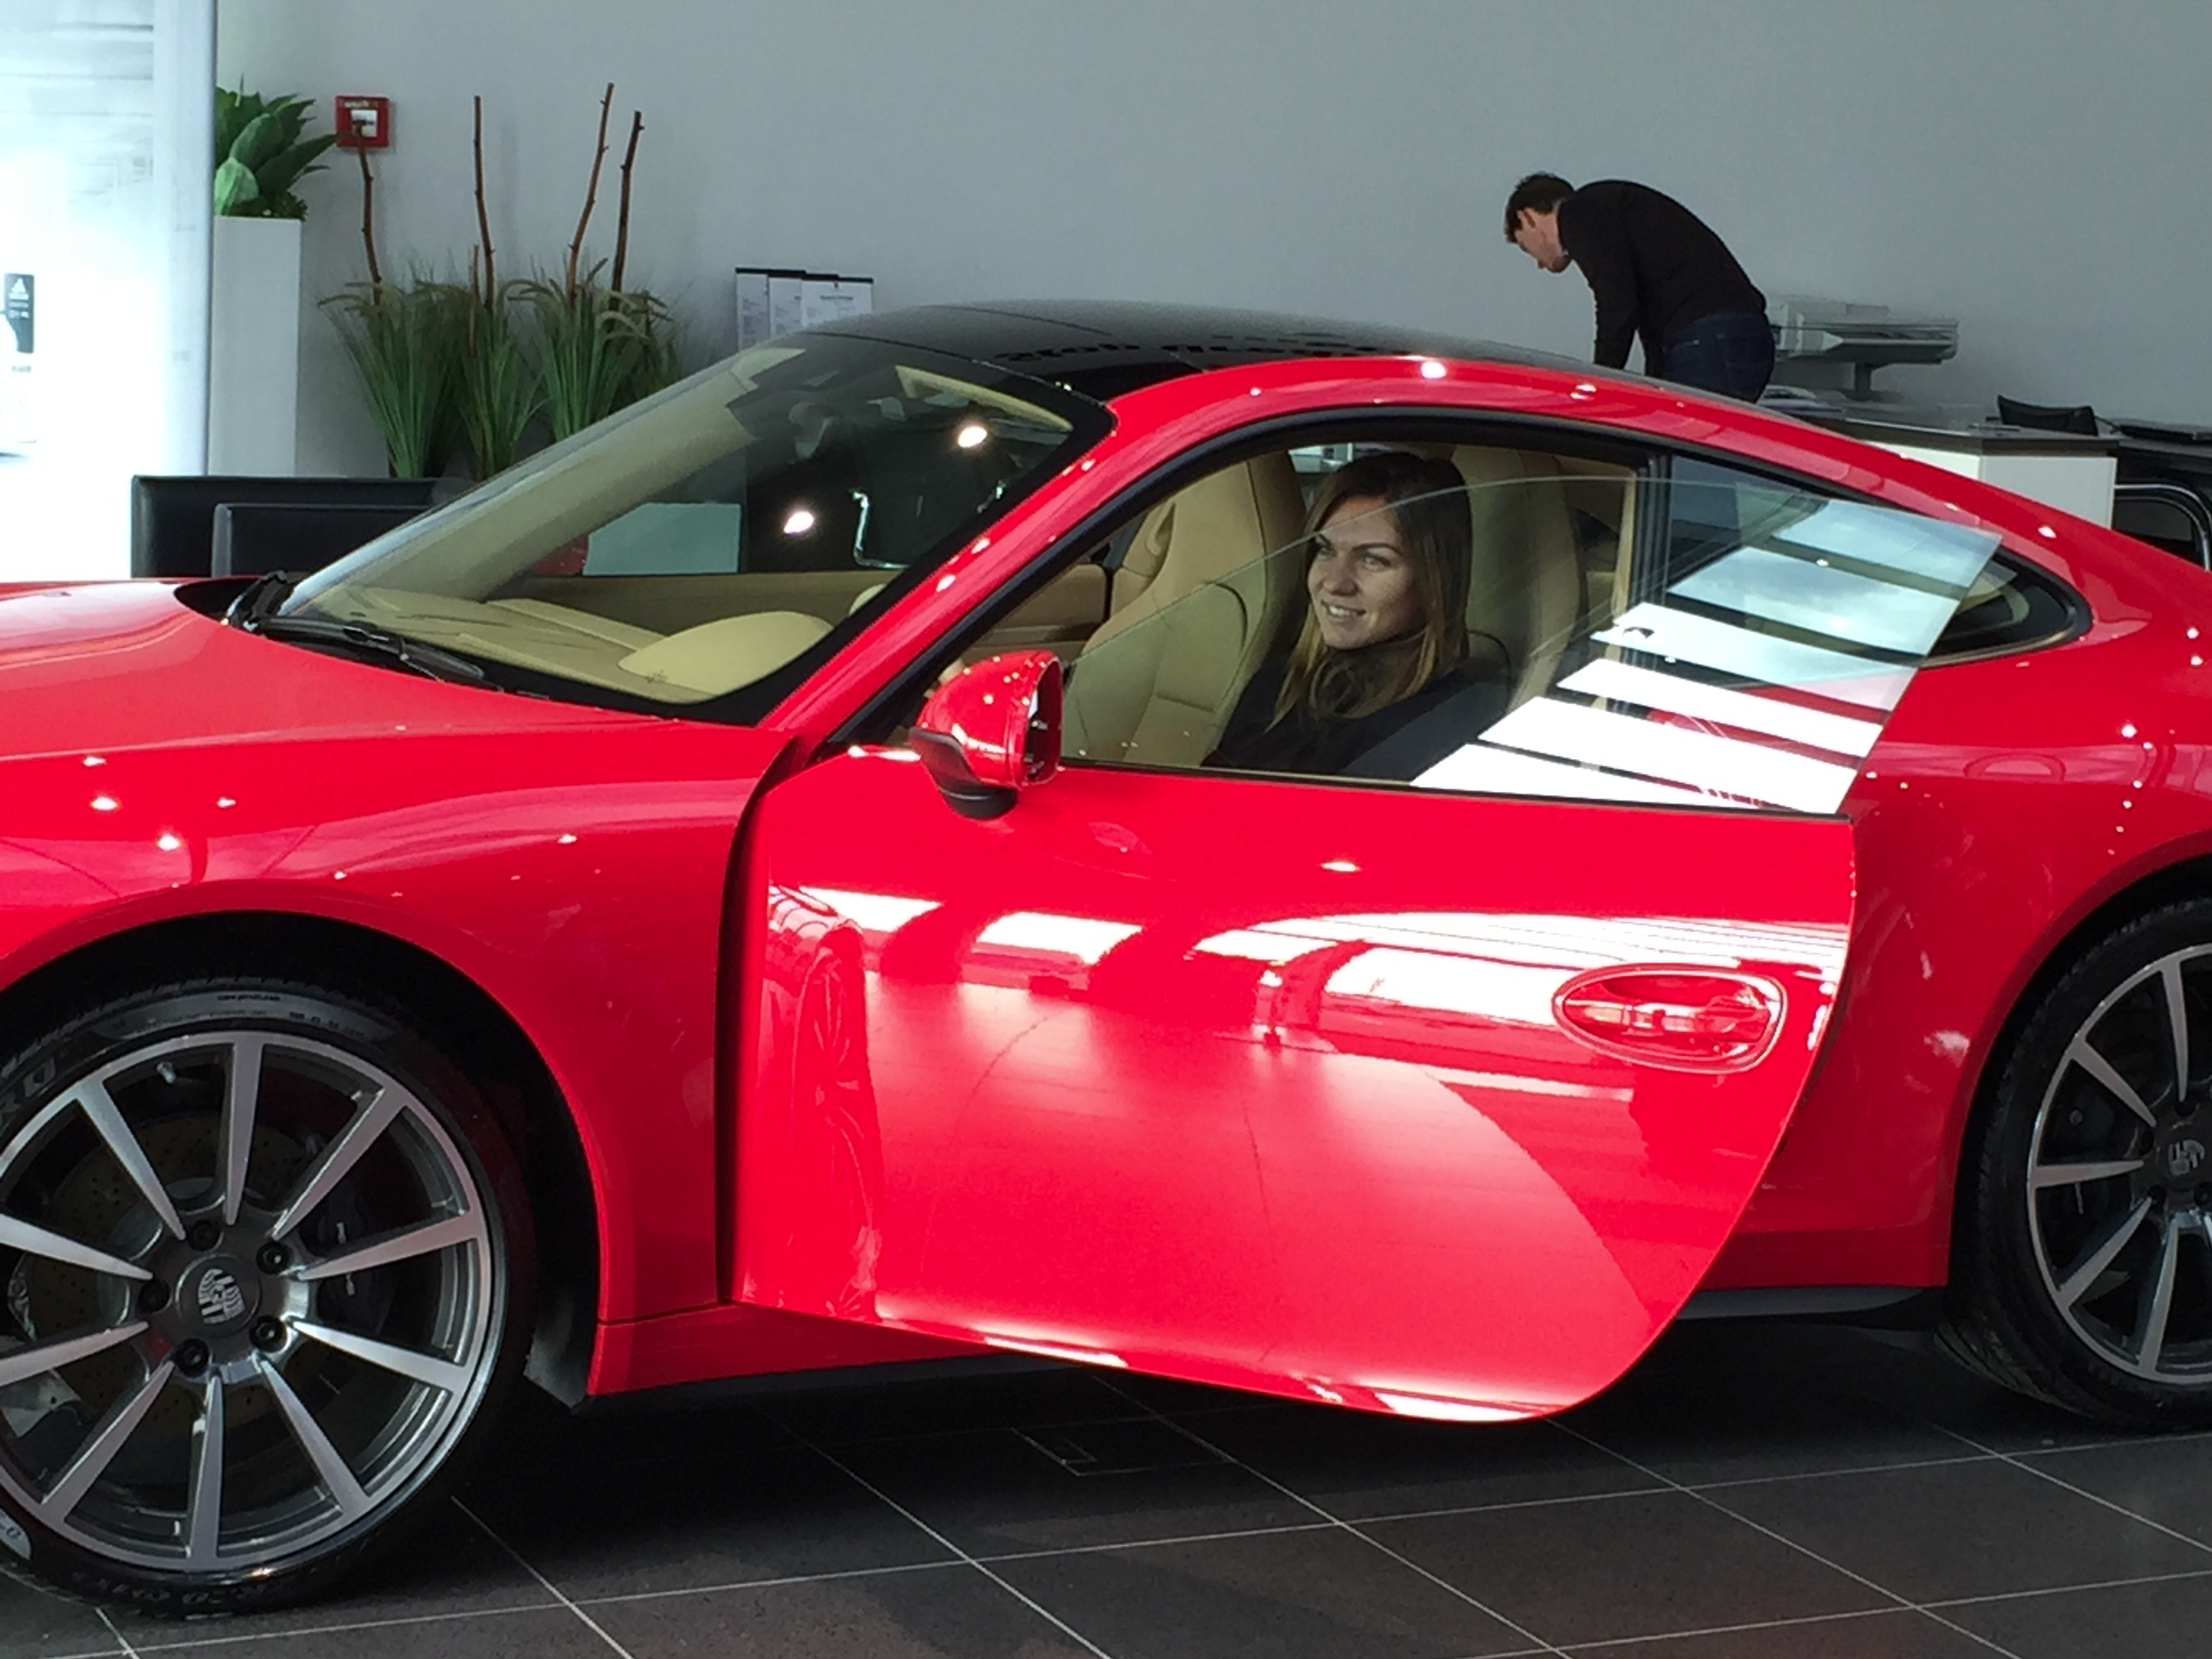 Porsche Gives Simona Halep A Red 911 Carrera 4 Autoevolution